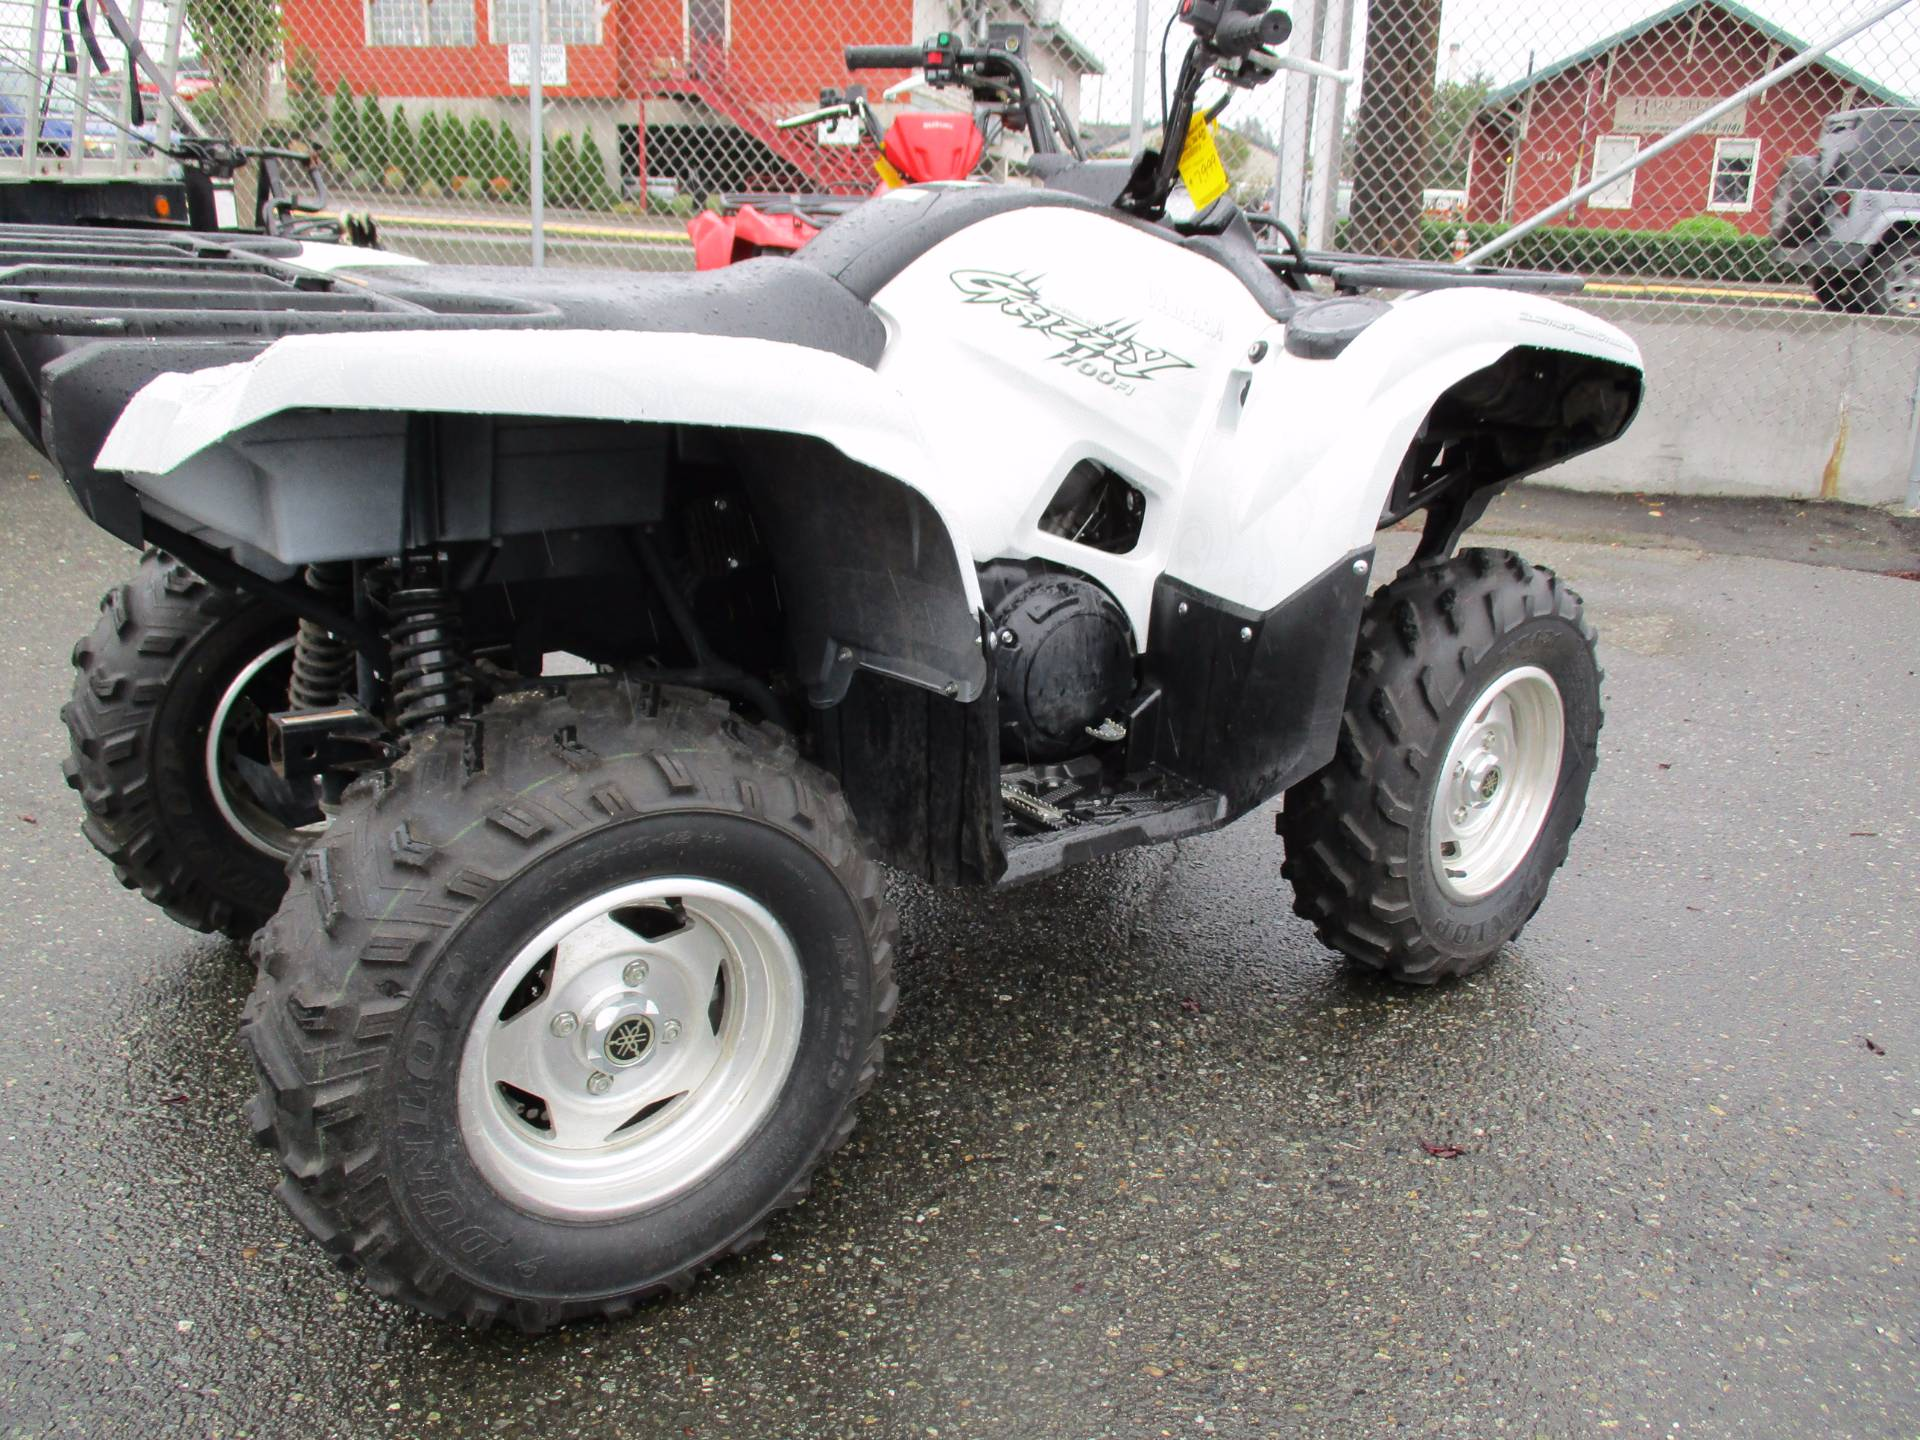 2010 Yamaha Grizzly 700 FI Auto. 4x4 EPS Special Edition in Monroe, Washington